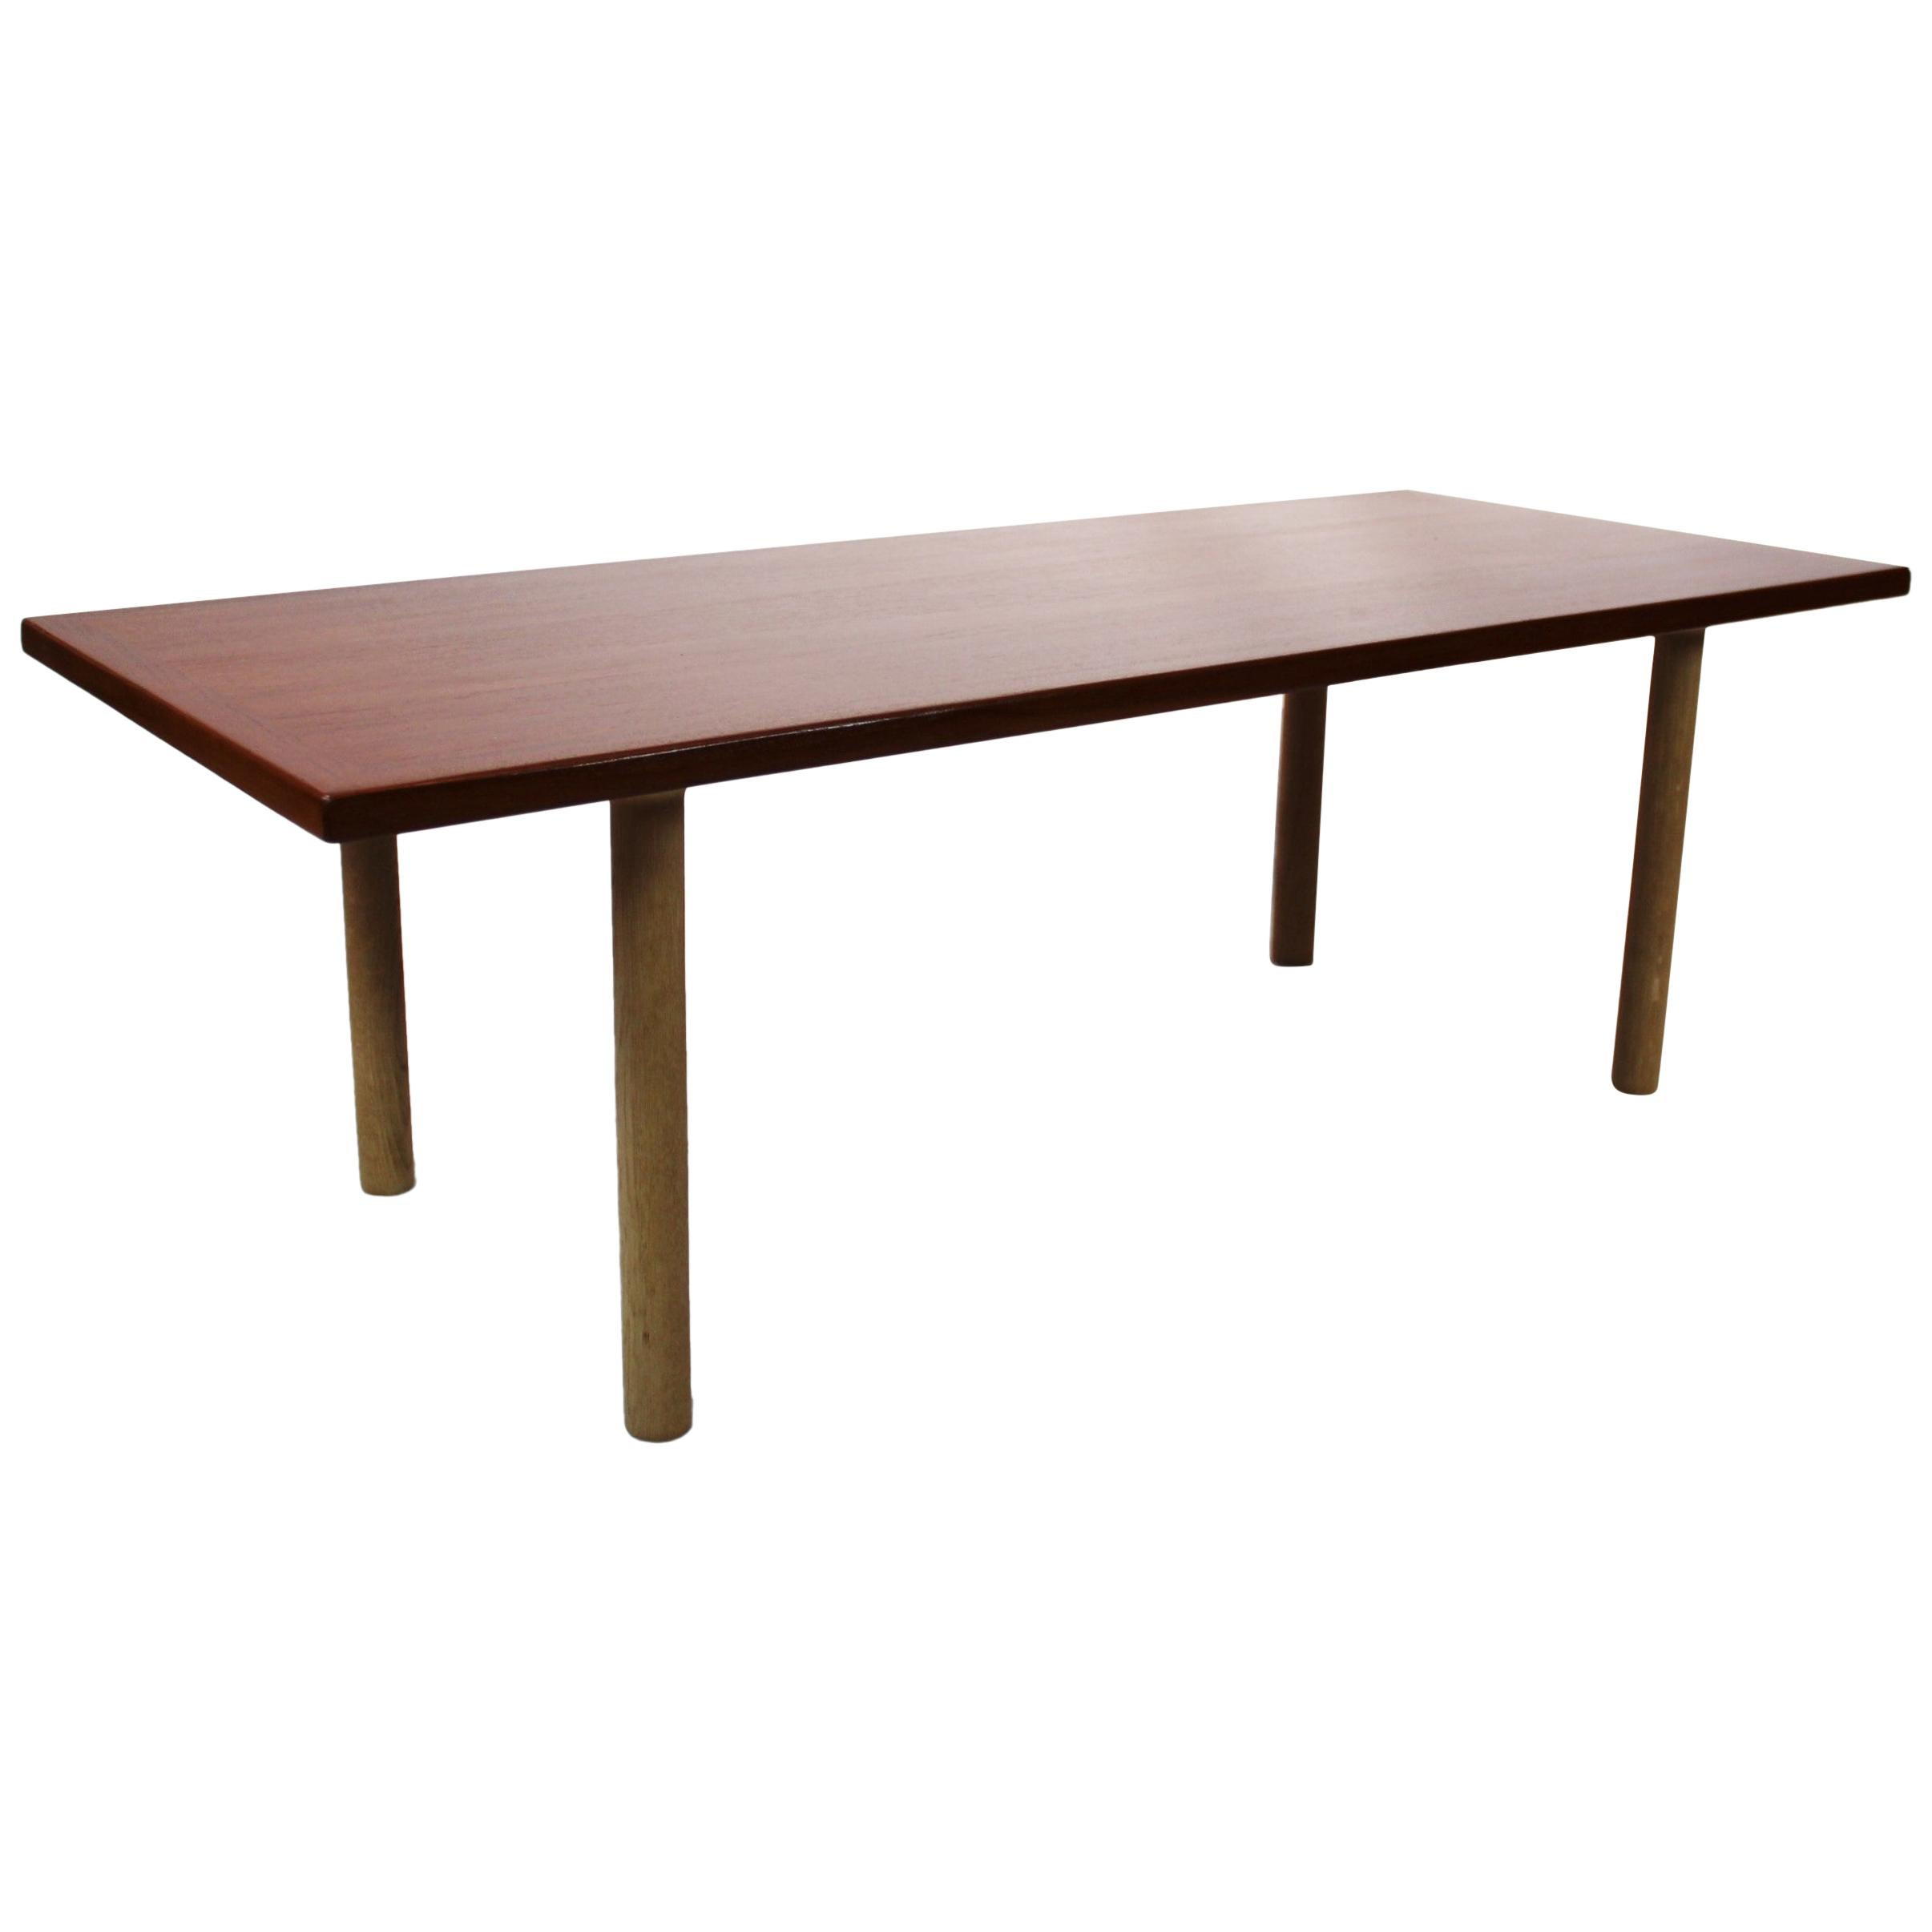 Coffee Table in Teak and Oak by Hans J. Wegner and Andreas Tuck, 1960s